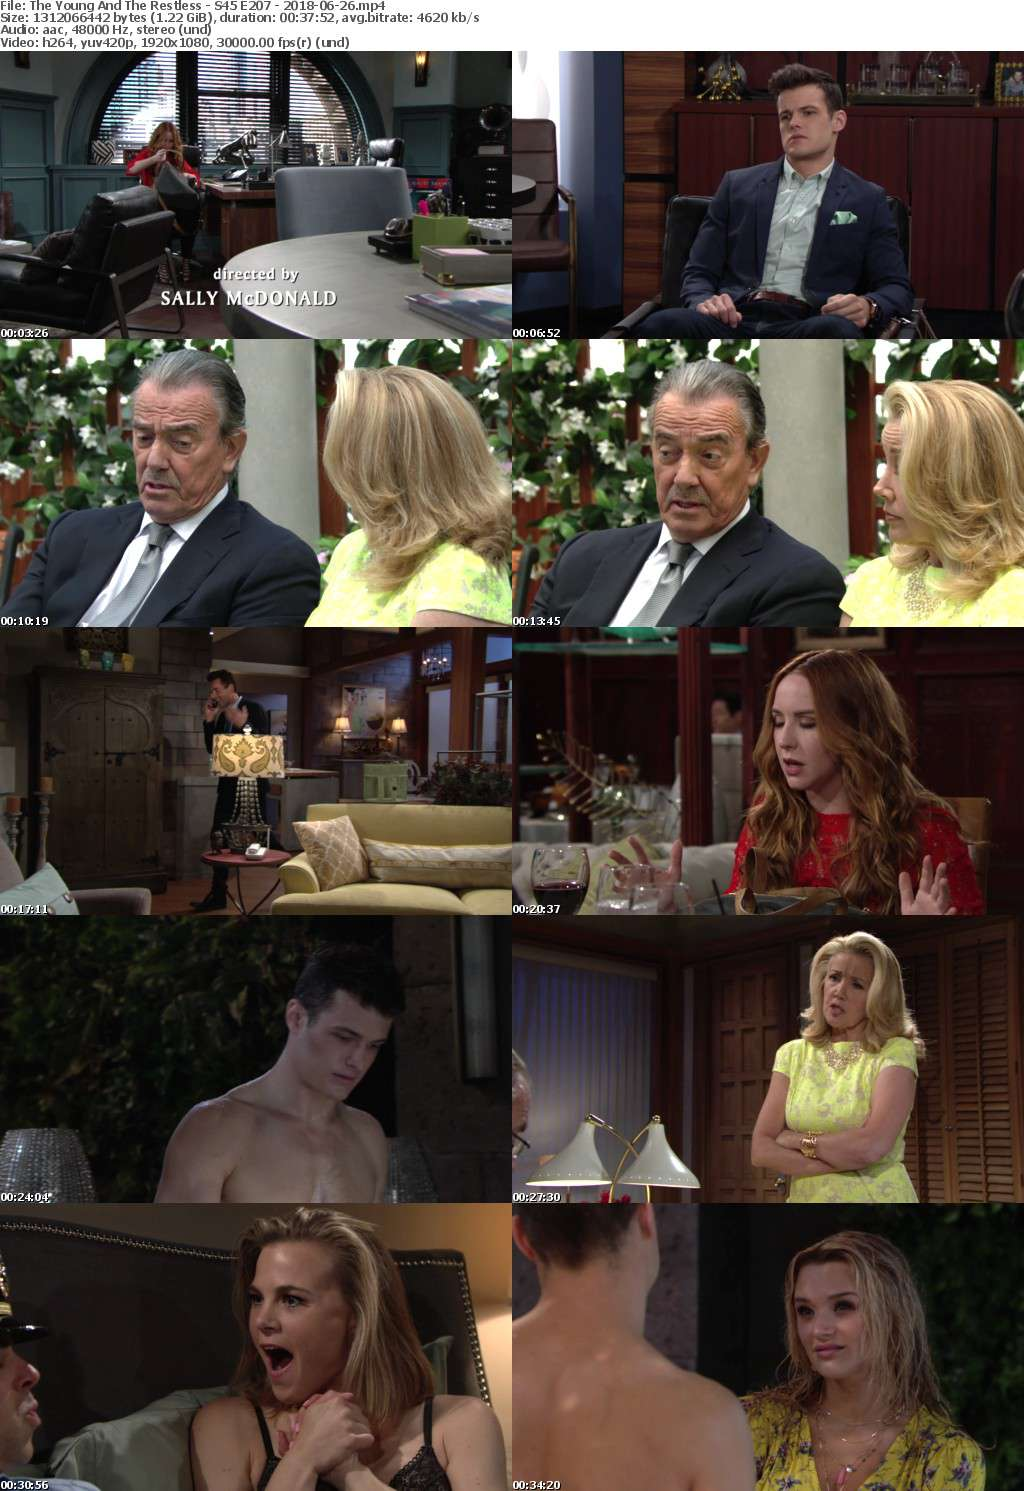 The Young And The Restless - S45 E207 - 2018-06-26